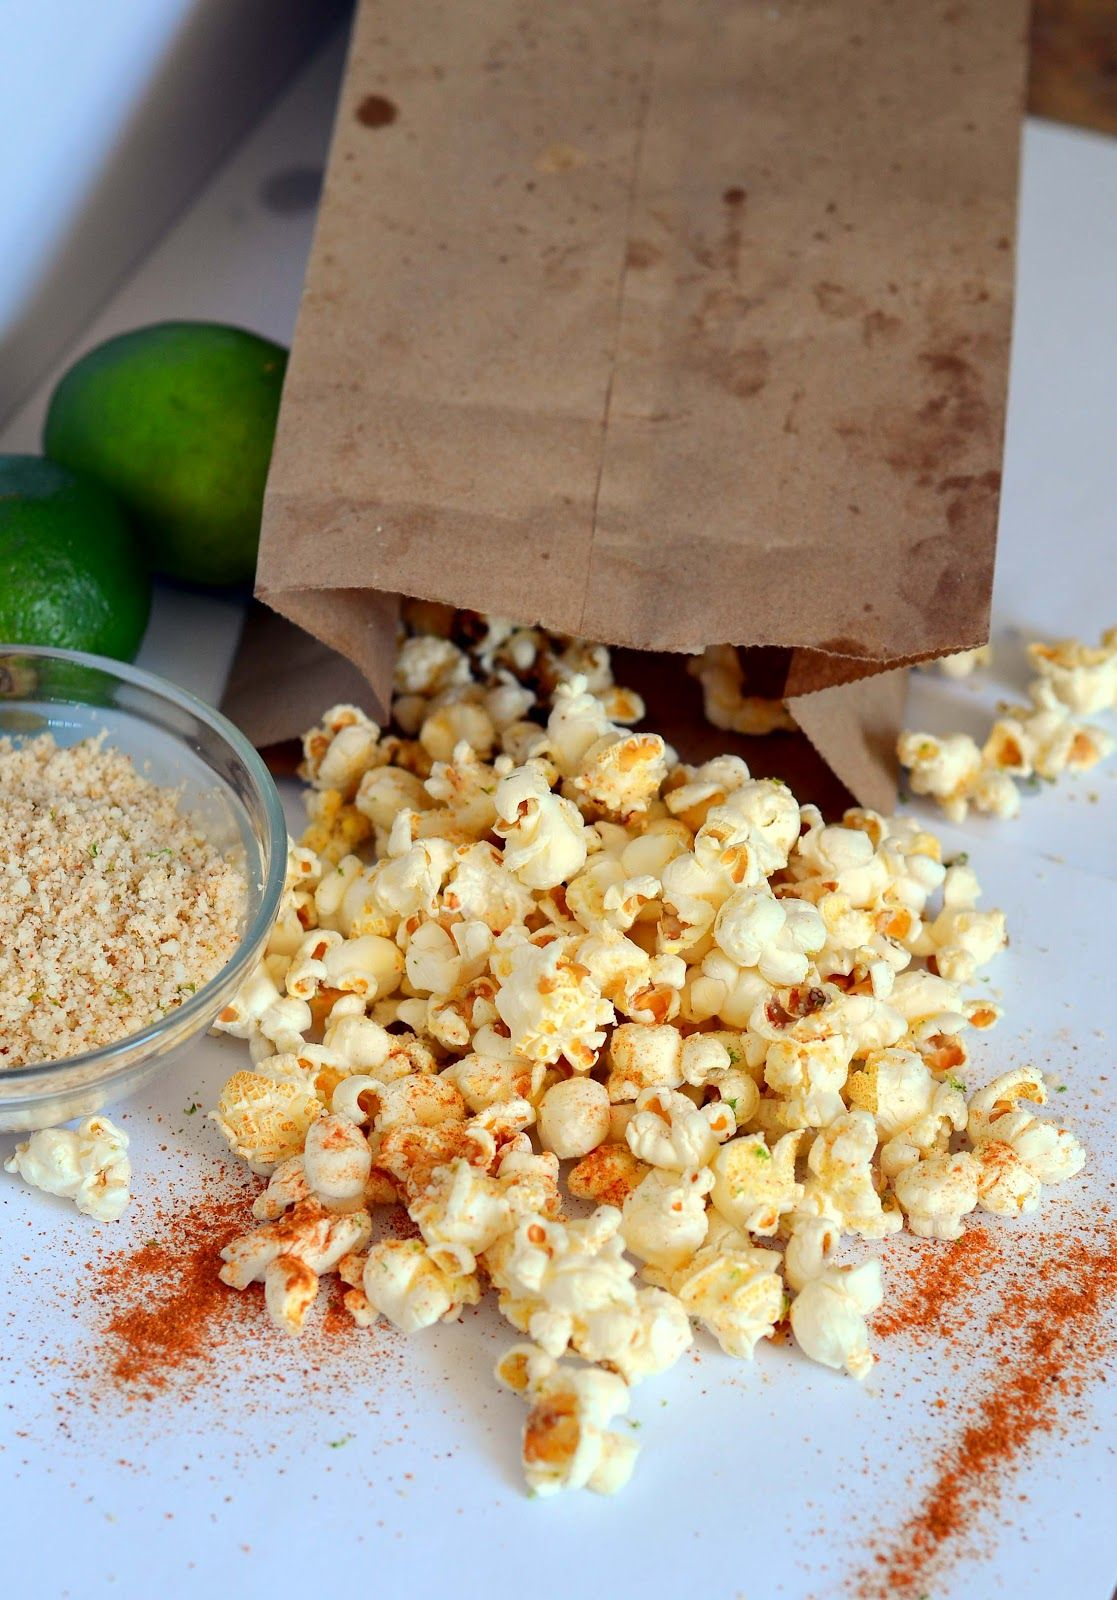 Cheesy Chili Lime Popcorn: A tasty snack.